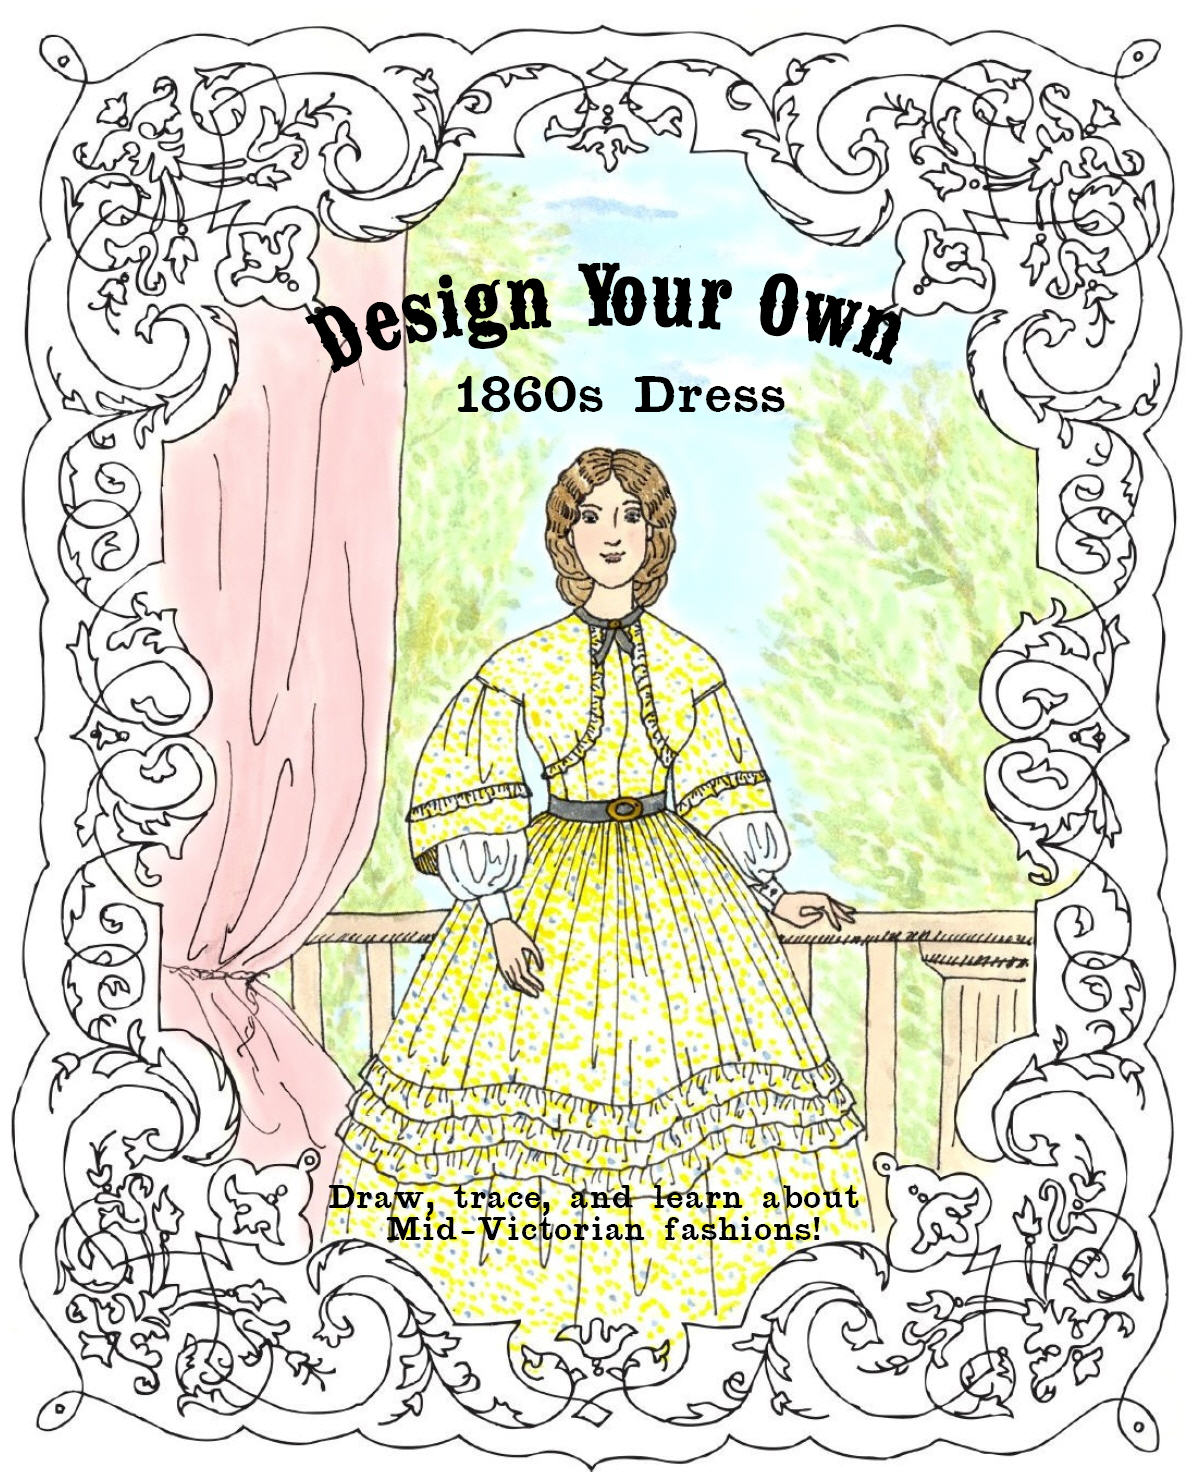 Make Your Own Dress Design: The Story Of A Seamstress: Announcing: Design Your Own